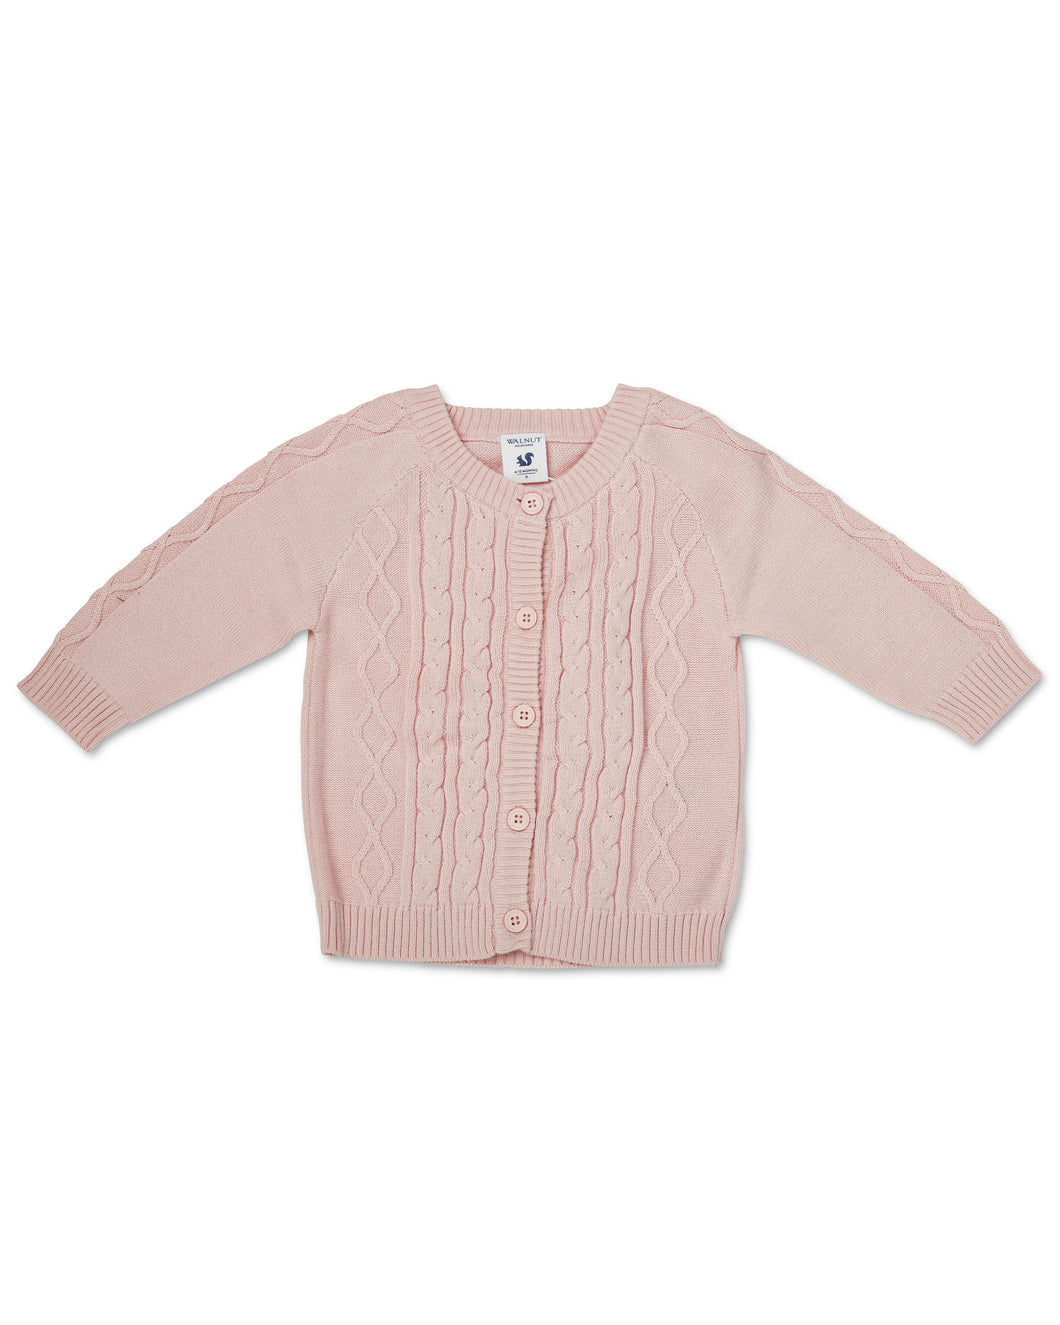 Bodhi Cable Knit Cardigan - Pale Pink